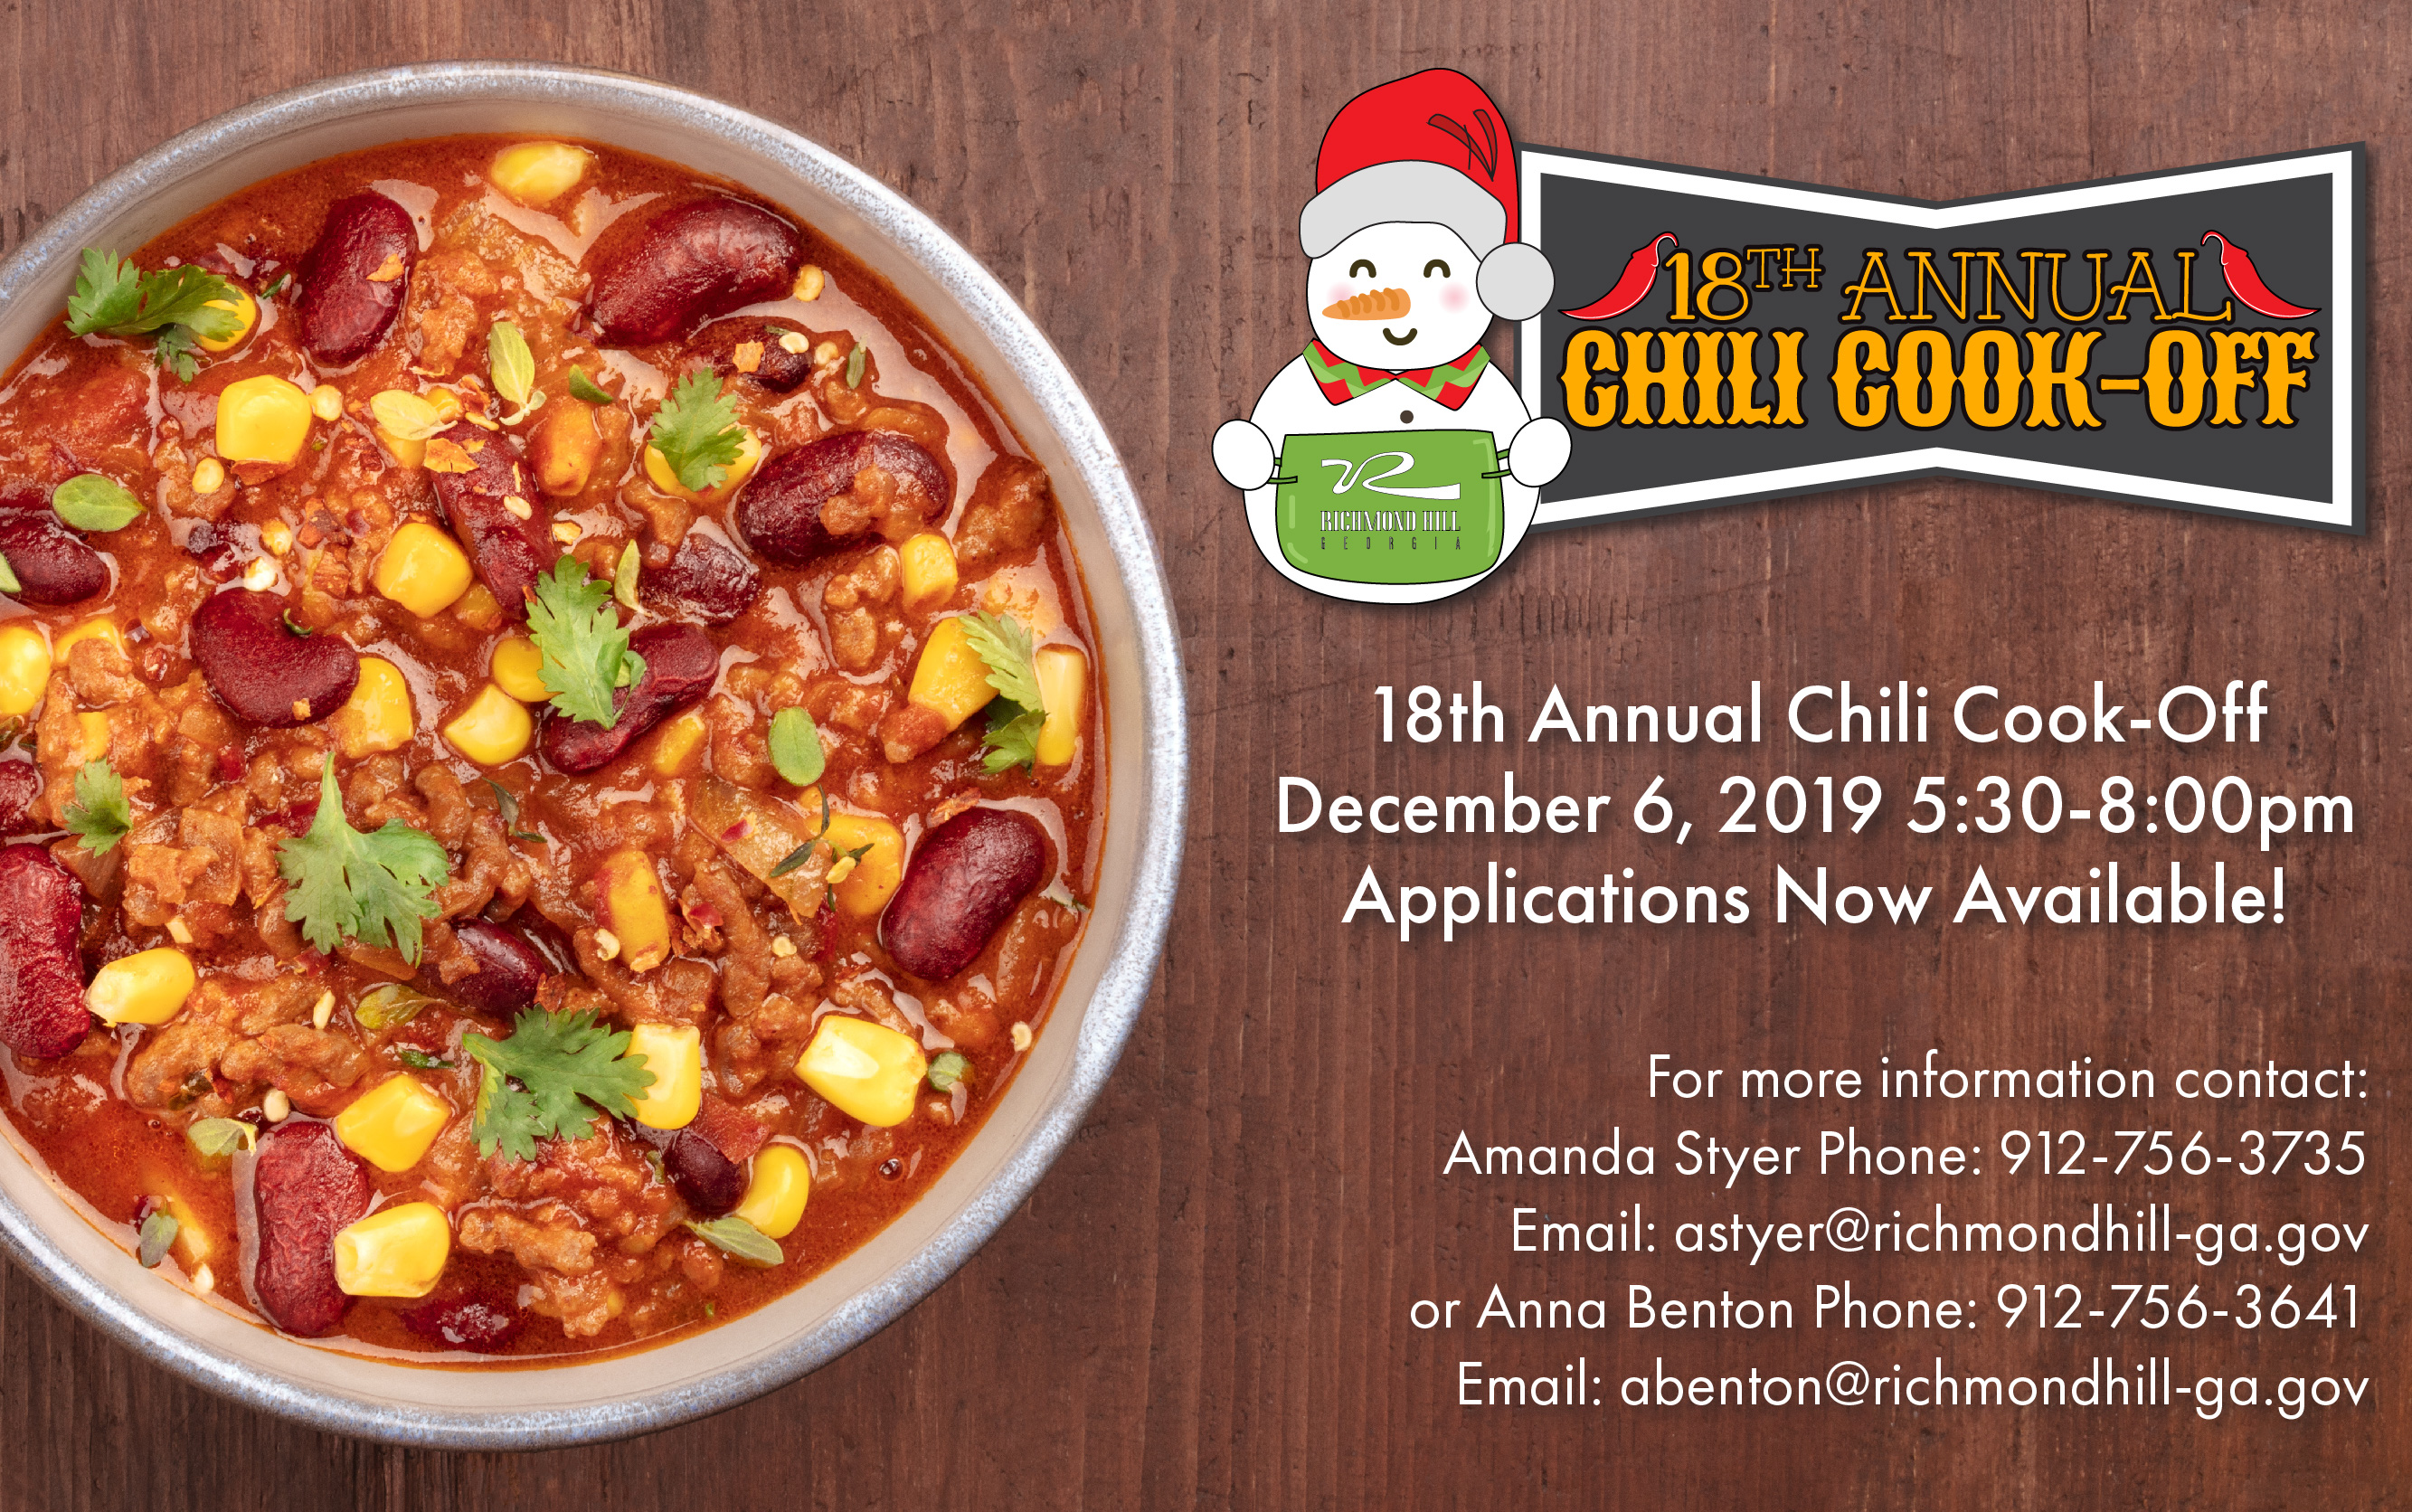 CHILI APPS AVAILABLE.jpg